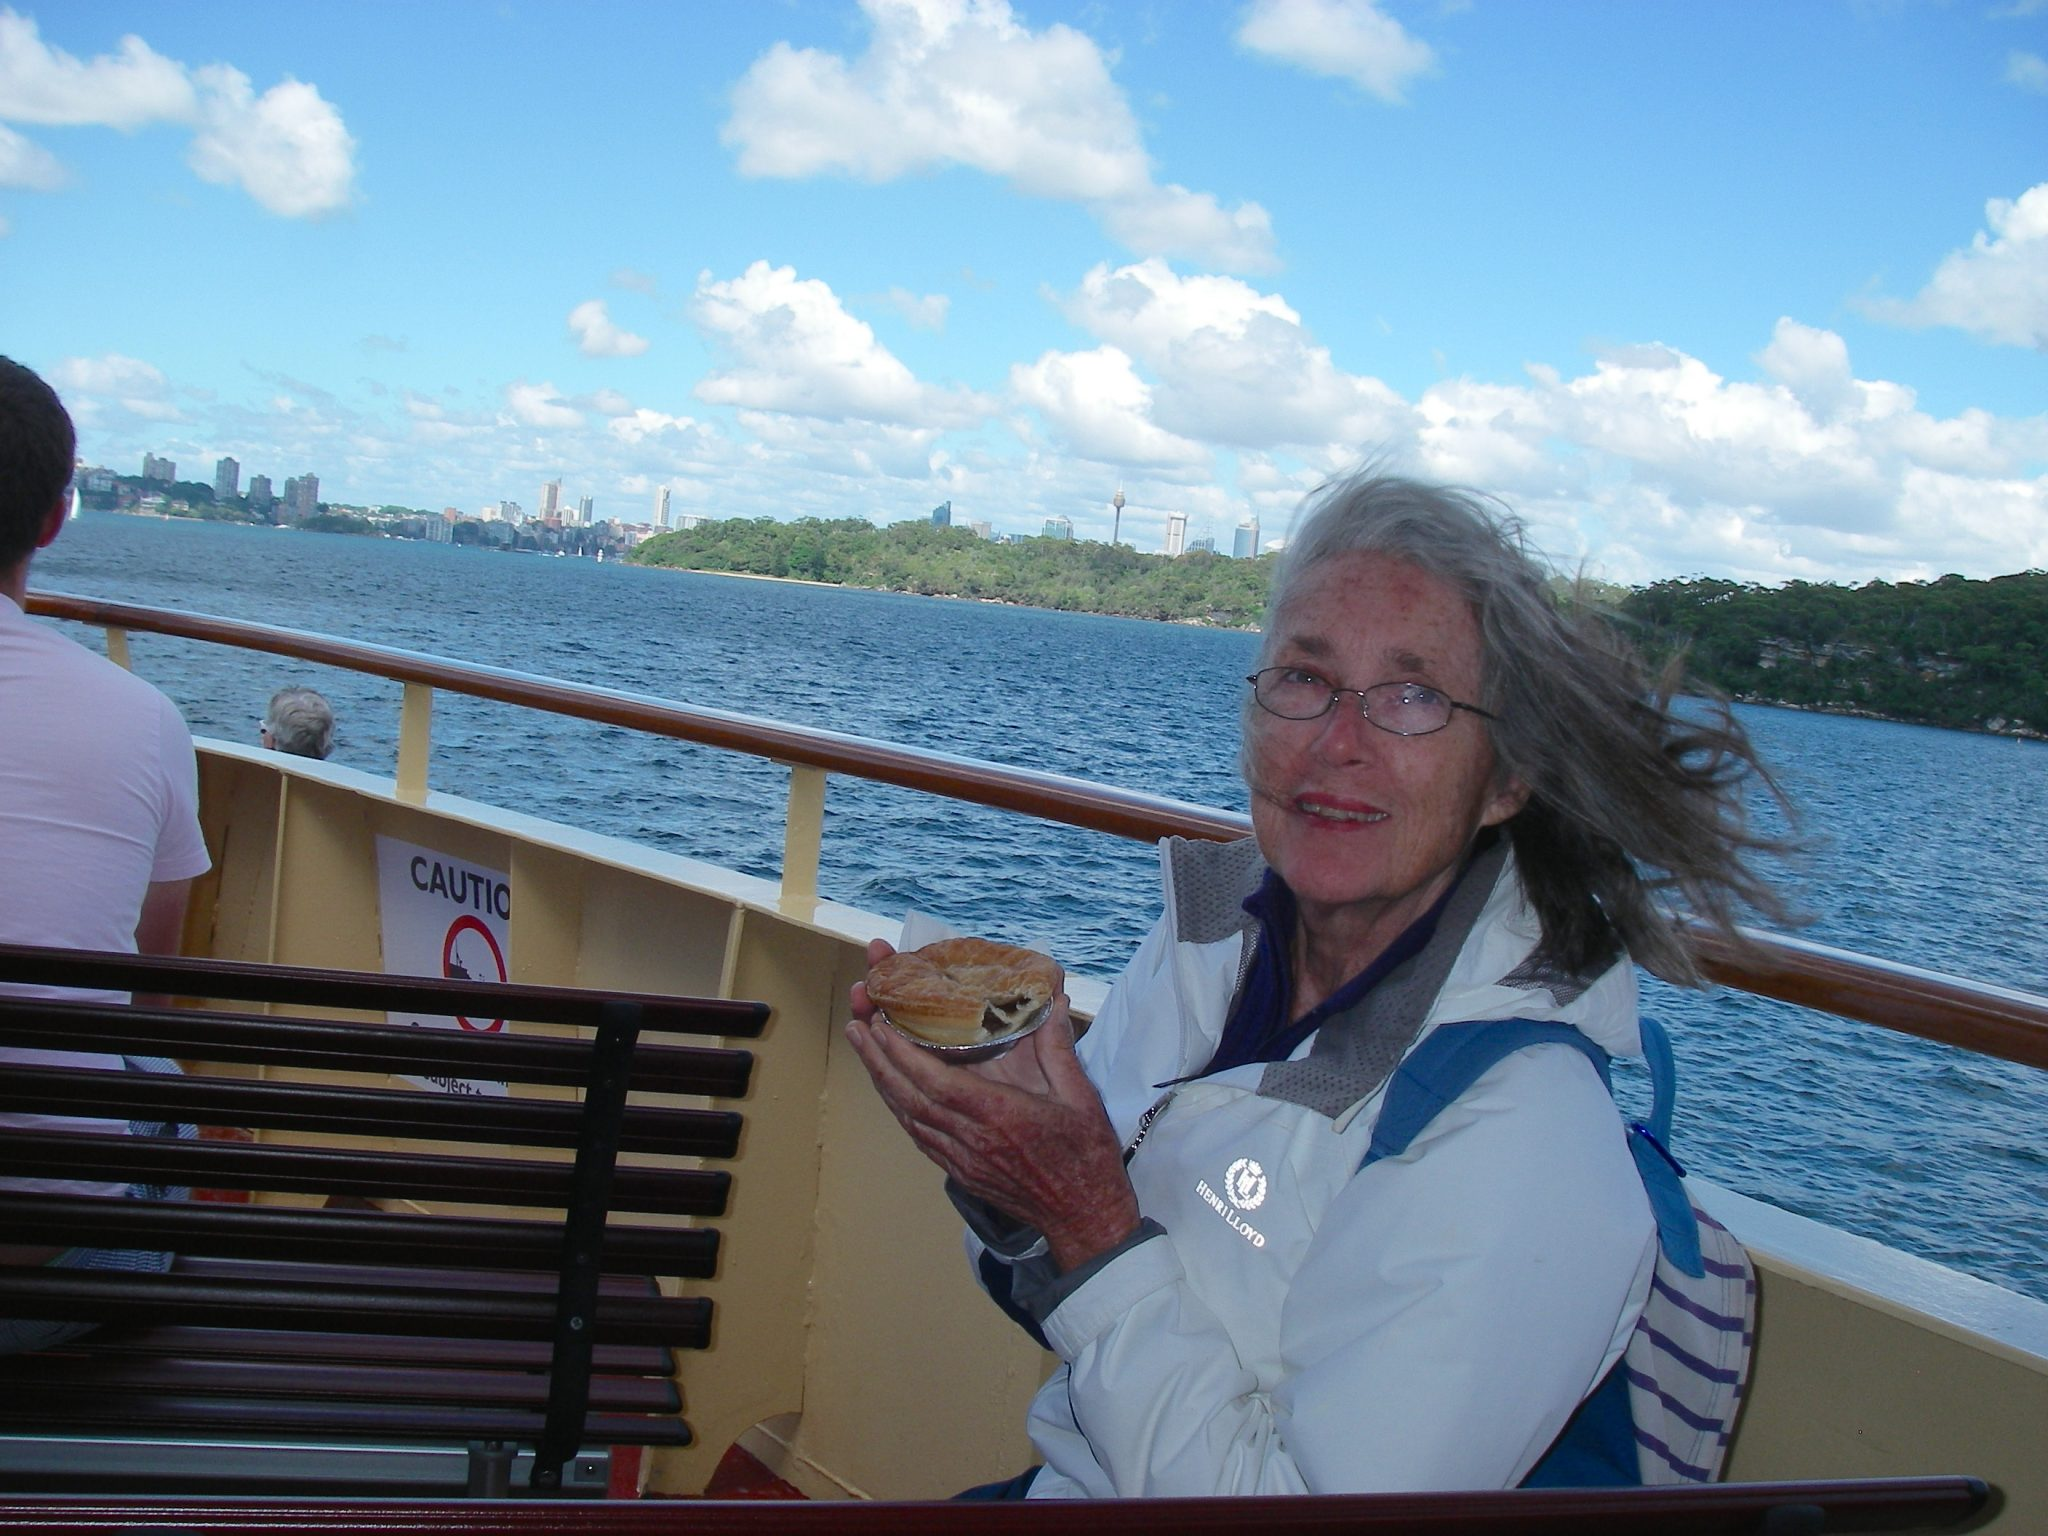 38.1. Many times we went to Sydney, traveling there by a water taxi from Joyful to the mainland of Church Point, then we walked to a bus, then got on a ferry boat, then we were there! H